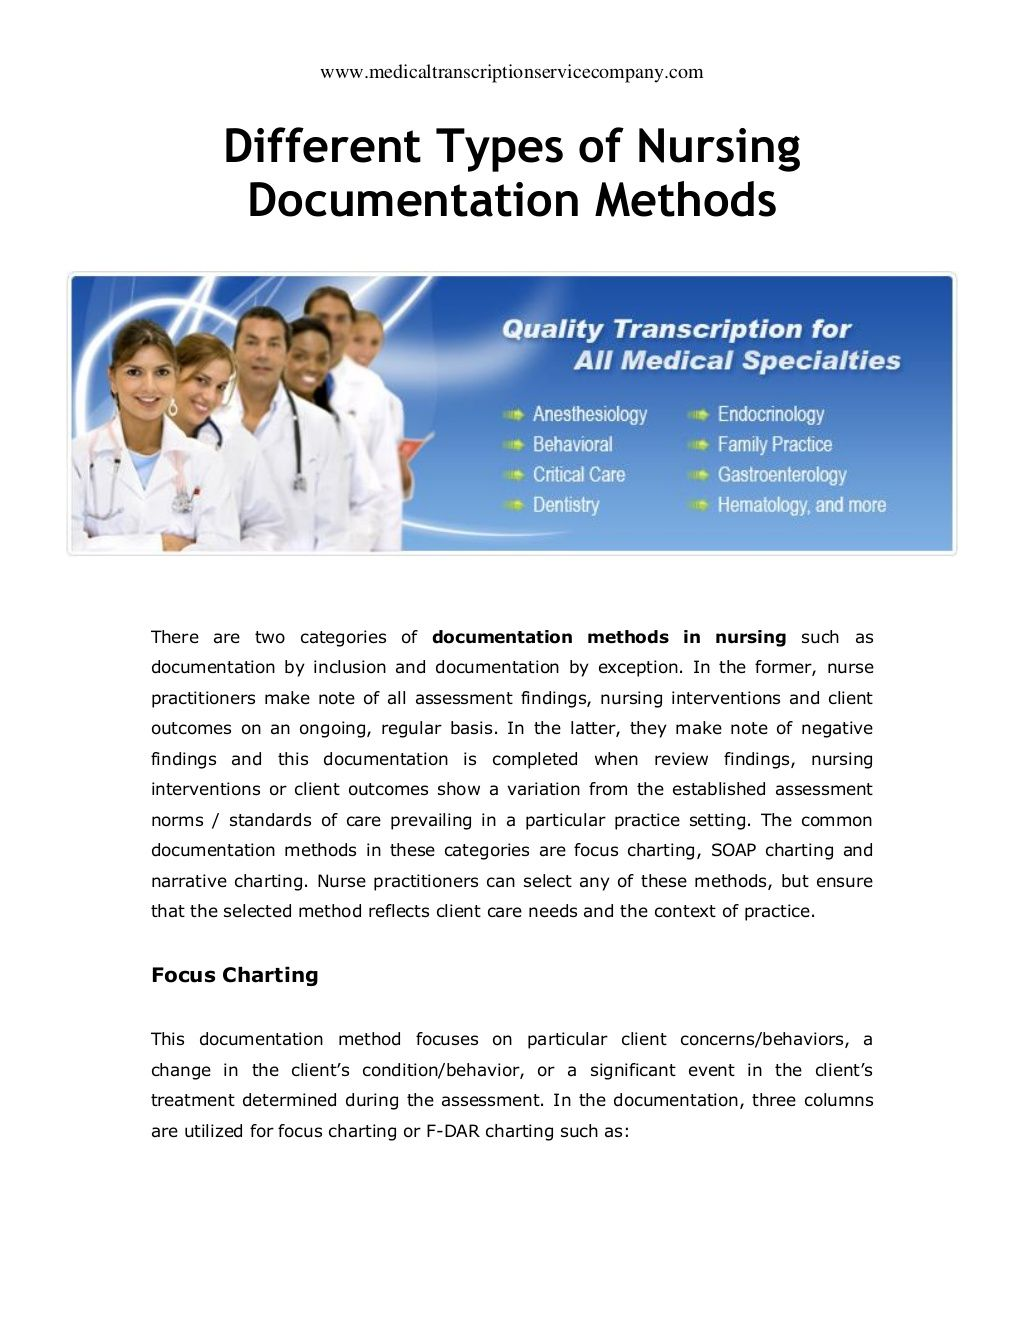 Different Types Of Nursing Documentation Methods By Medical